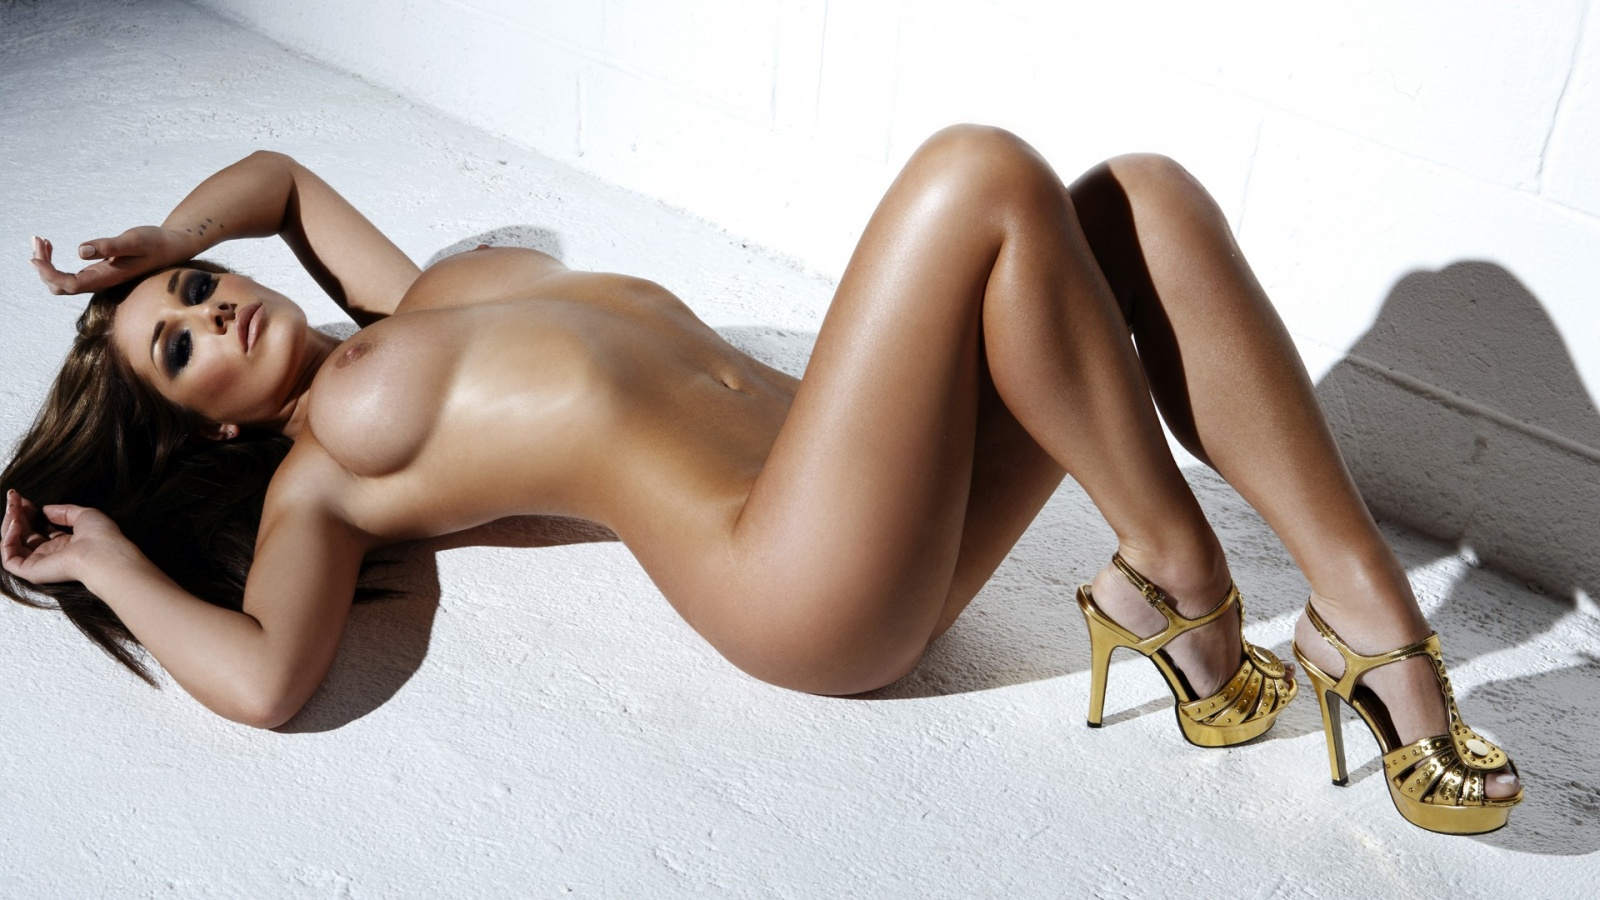 Lucy Pinder Naked beauty erotic model on the floor desktop ...: http://zoomgirls.net/view-lucy-pinder-6-1600x900.html